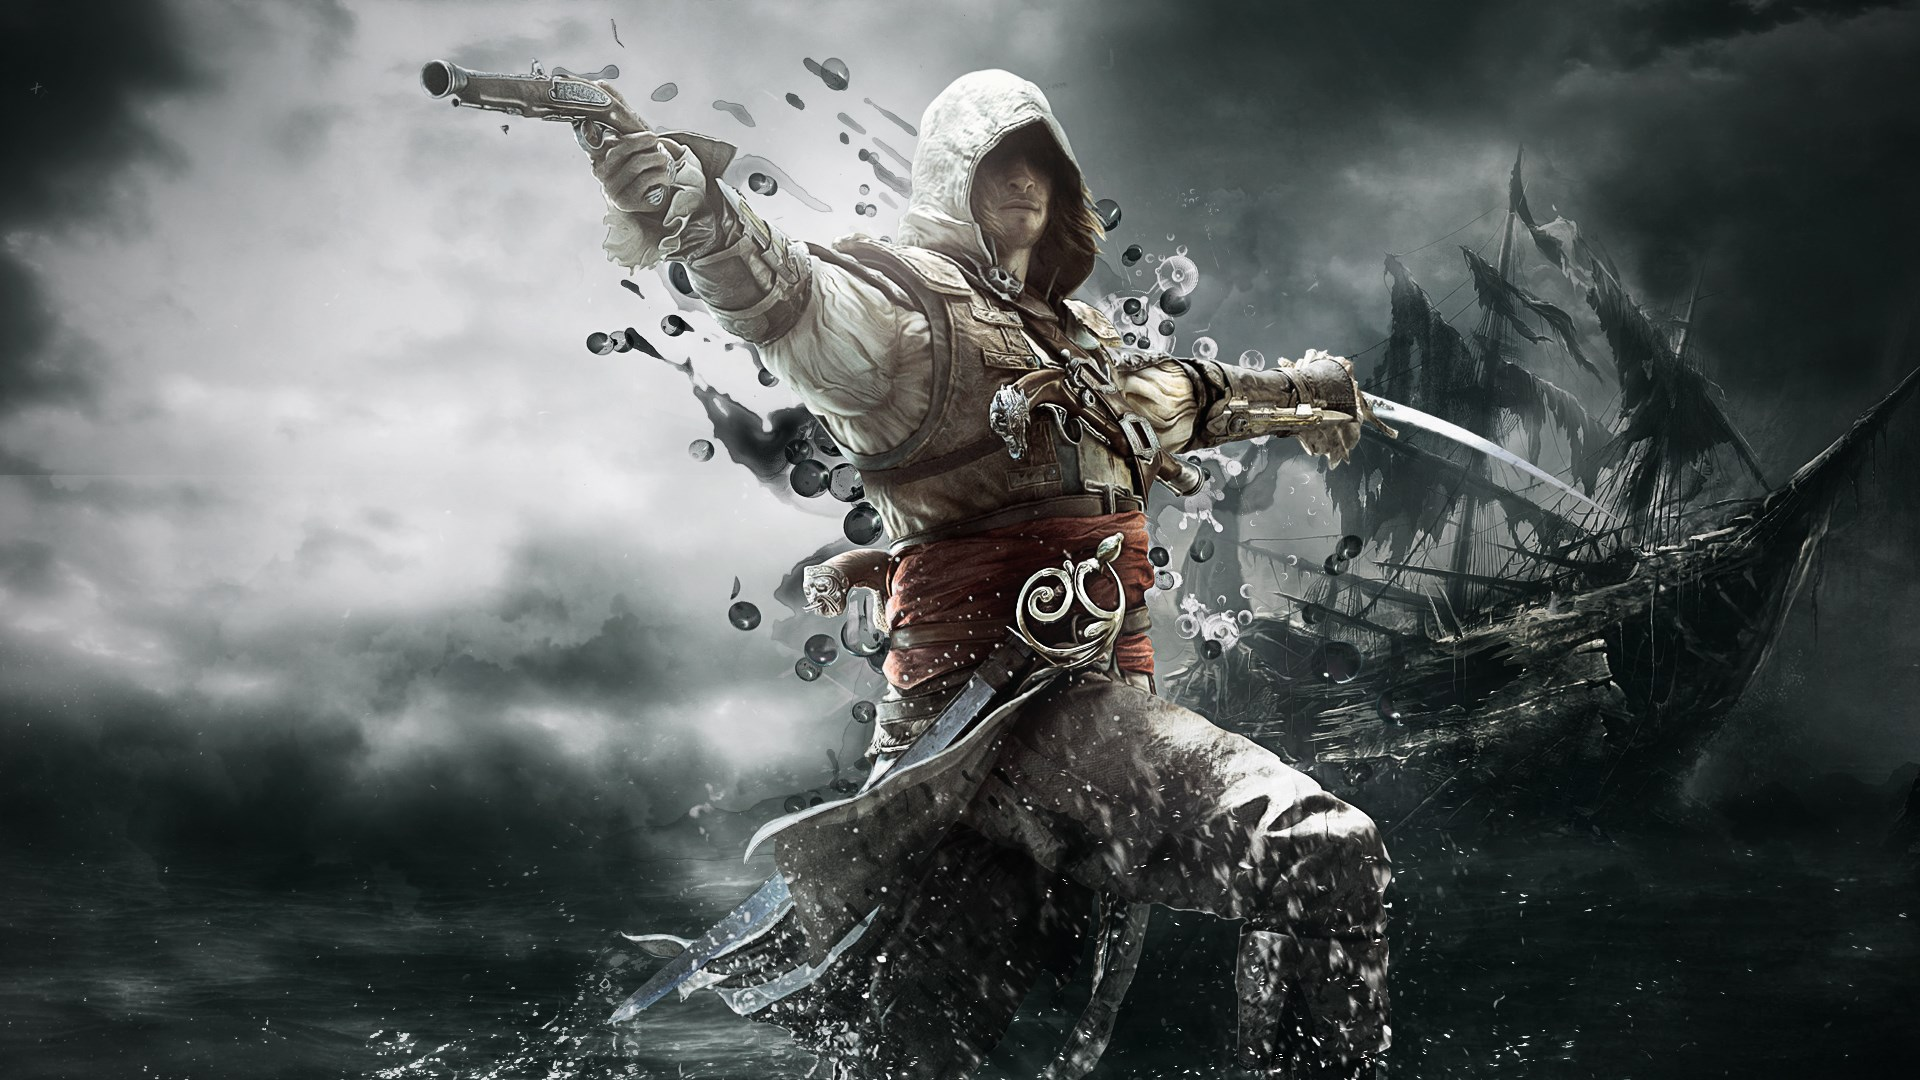 Assassins Creed Wallpaper HD - WallpaperSafari